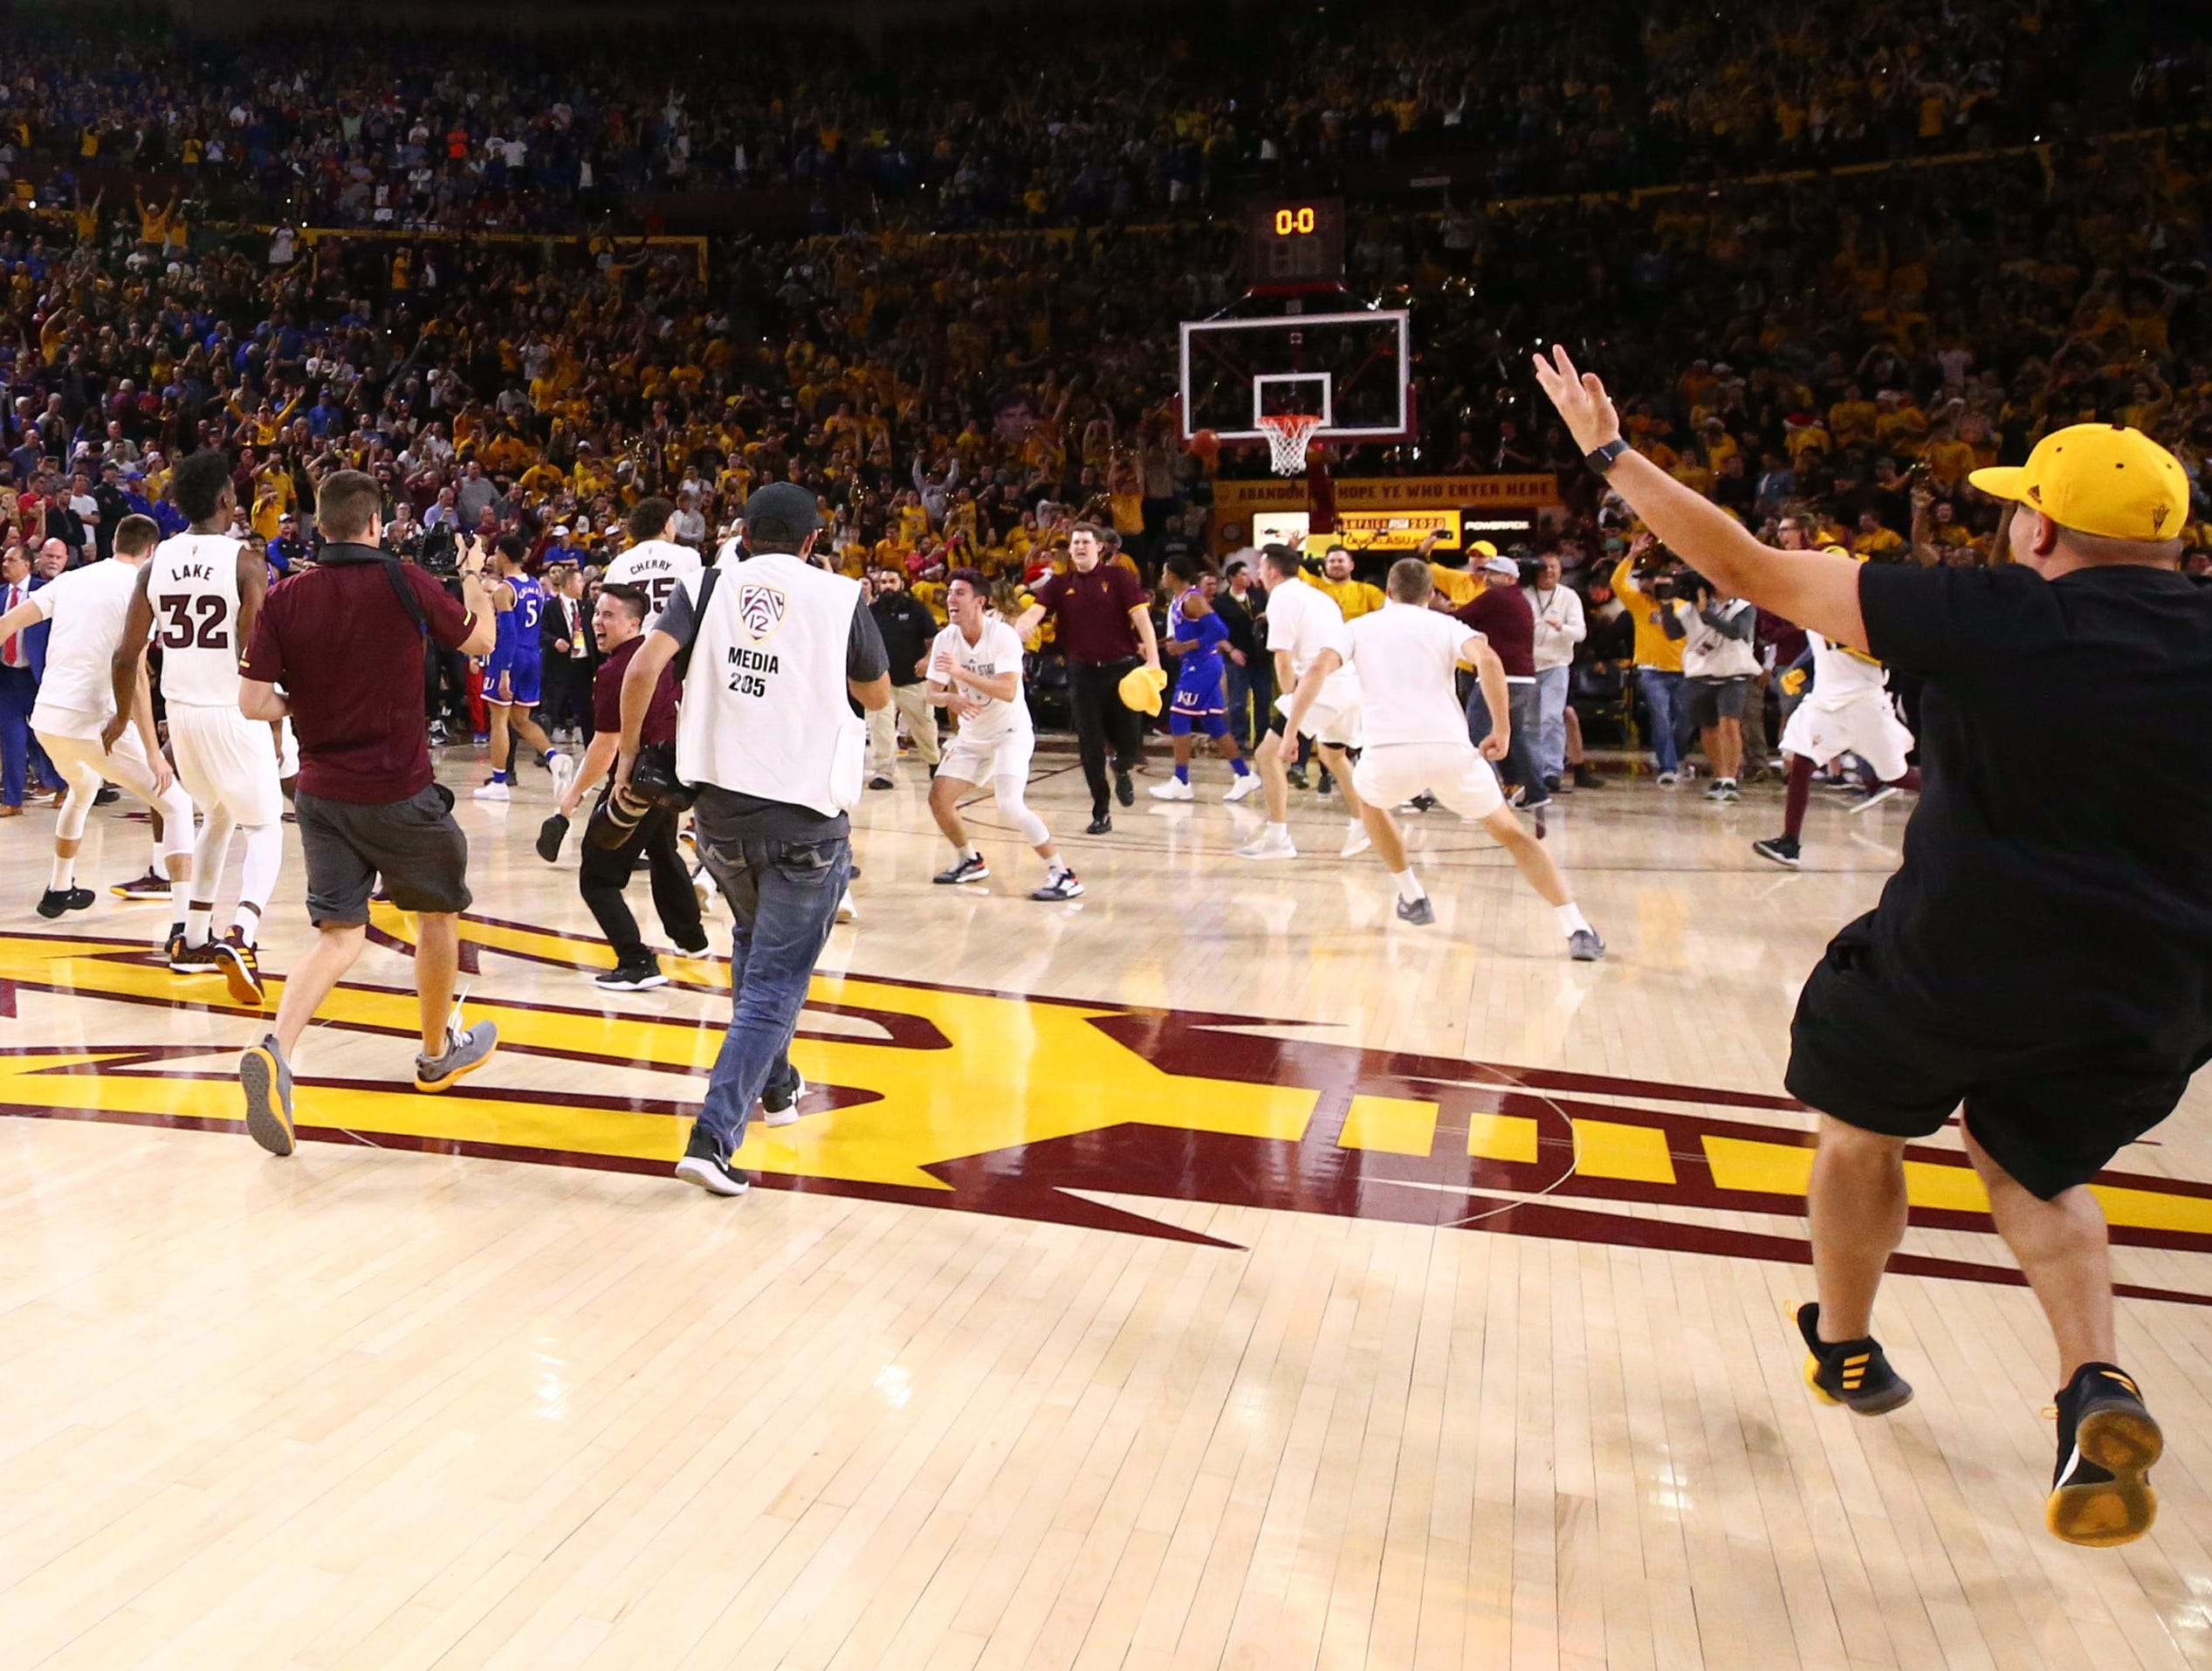 Arizona State fans rush the court after the Sun Devils defeated Kansas on Dec. 22 at Wells Fargo Arena.